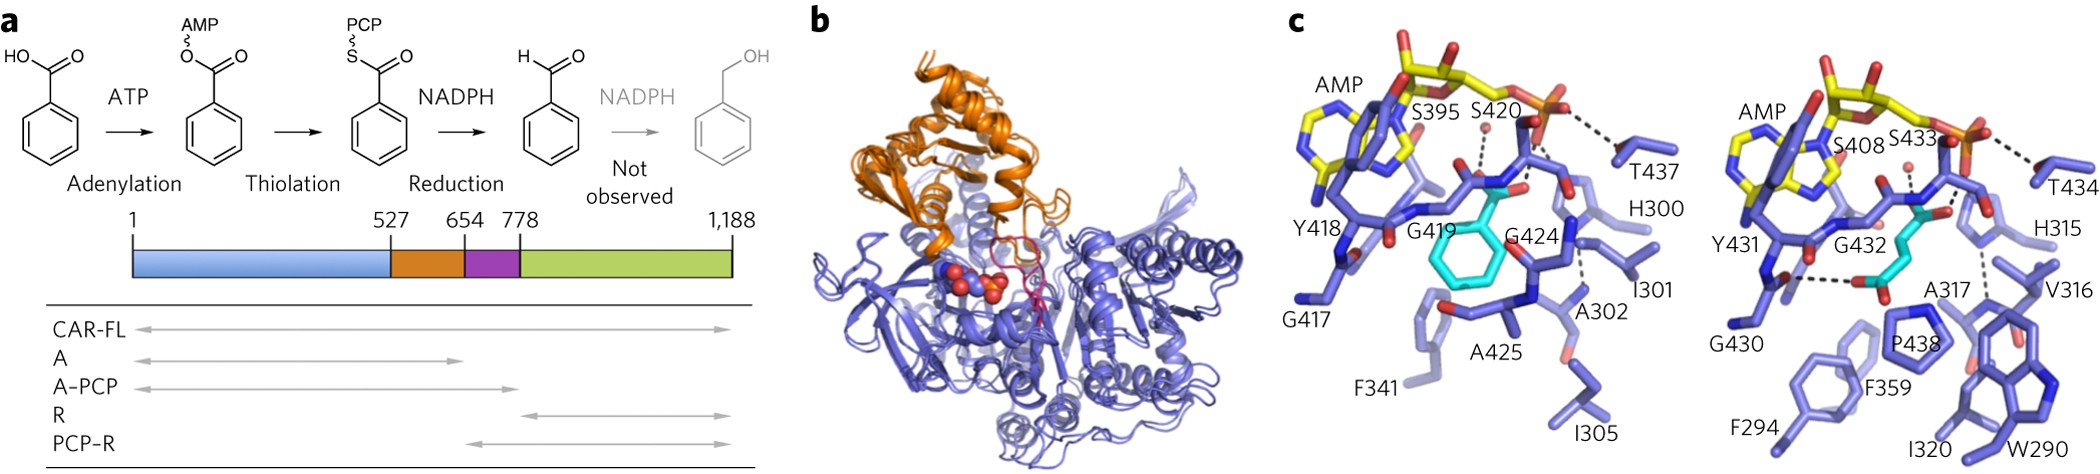 Structures Of Carboxylic Acid Reductase Reveal Domain